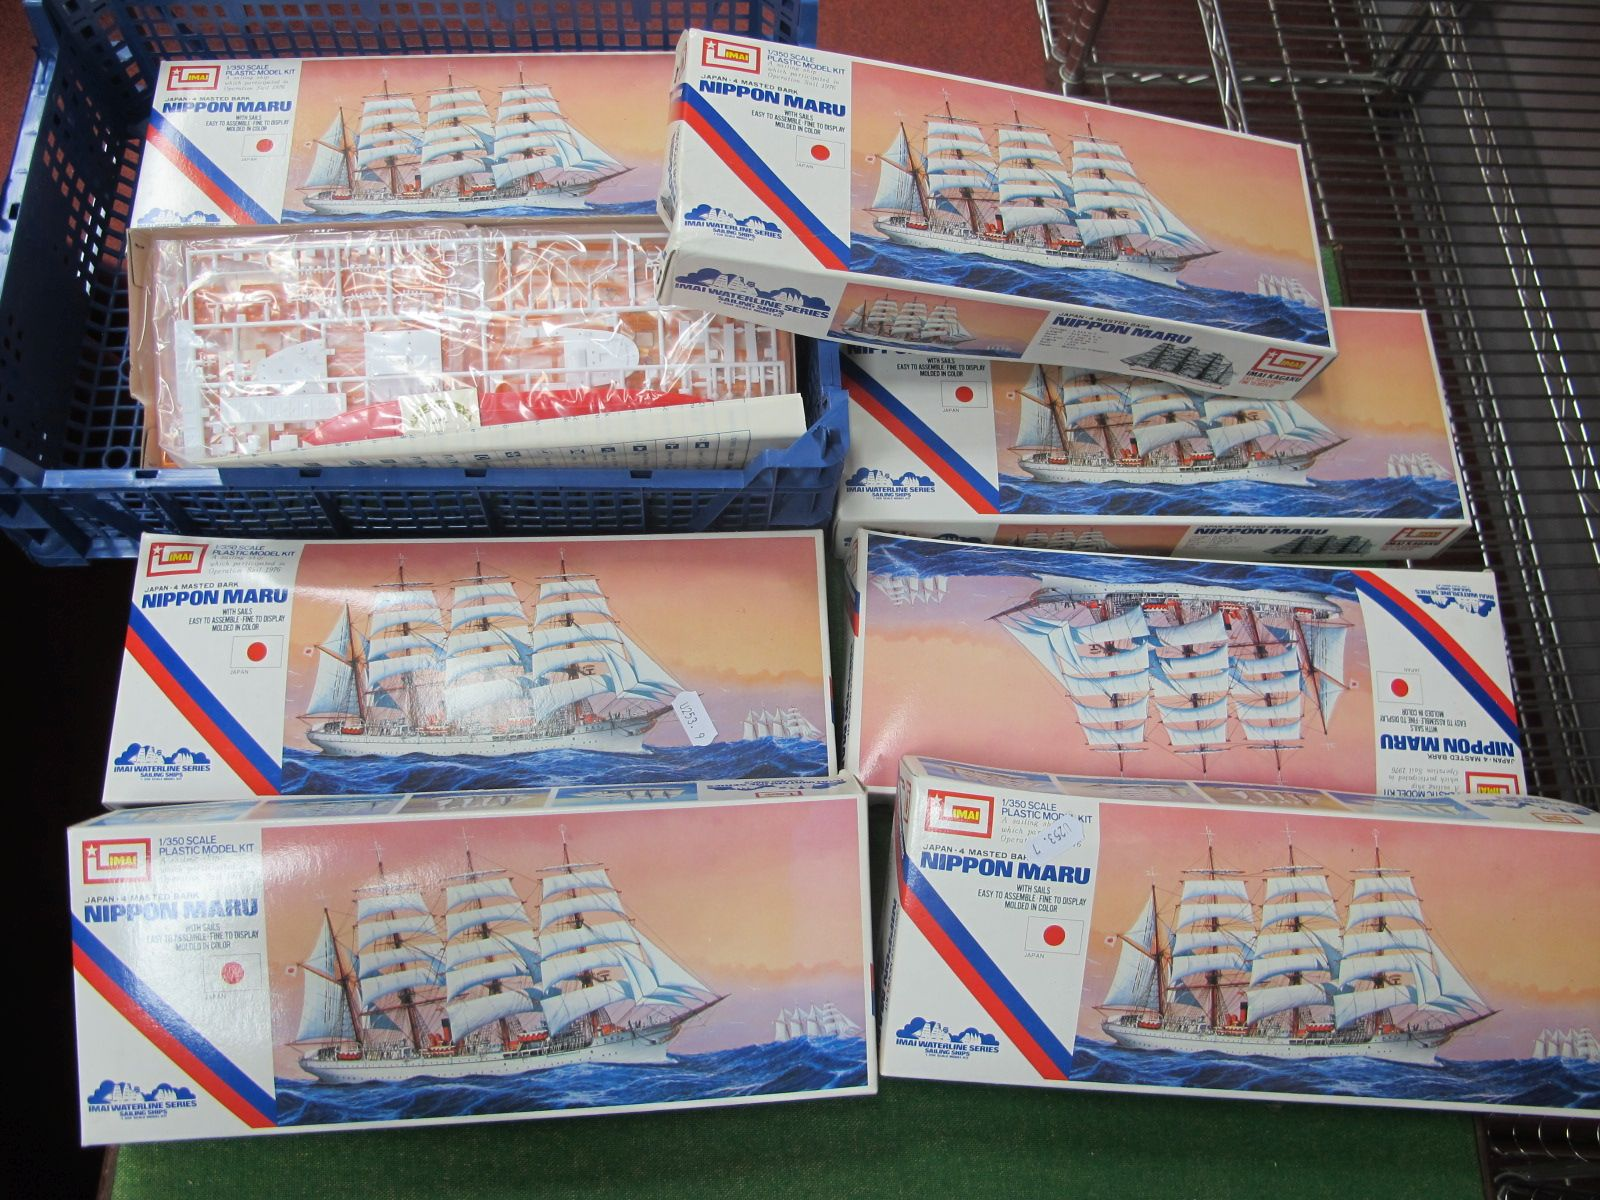 Seven 1/350th Scale Plastic Model Kits by Imai, all of the Nippon Maru, (appear unstarted but